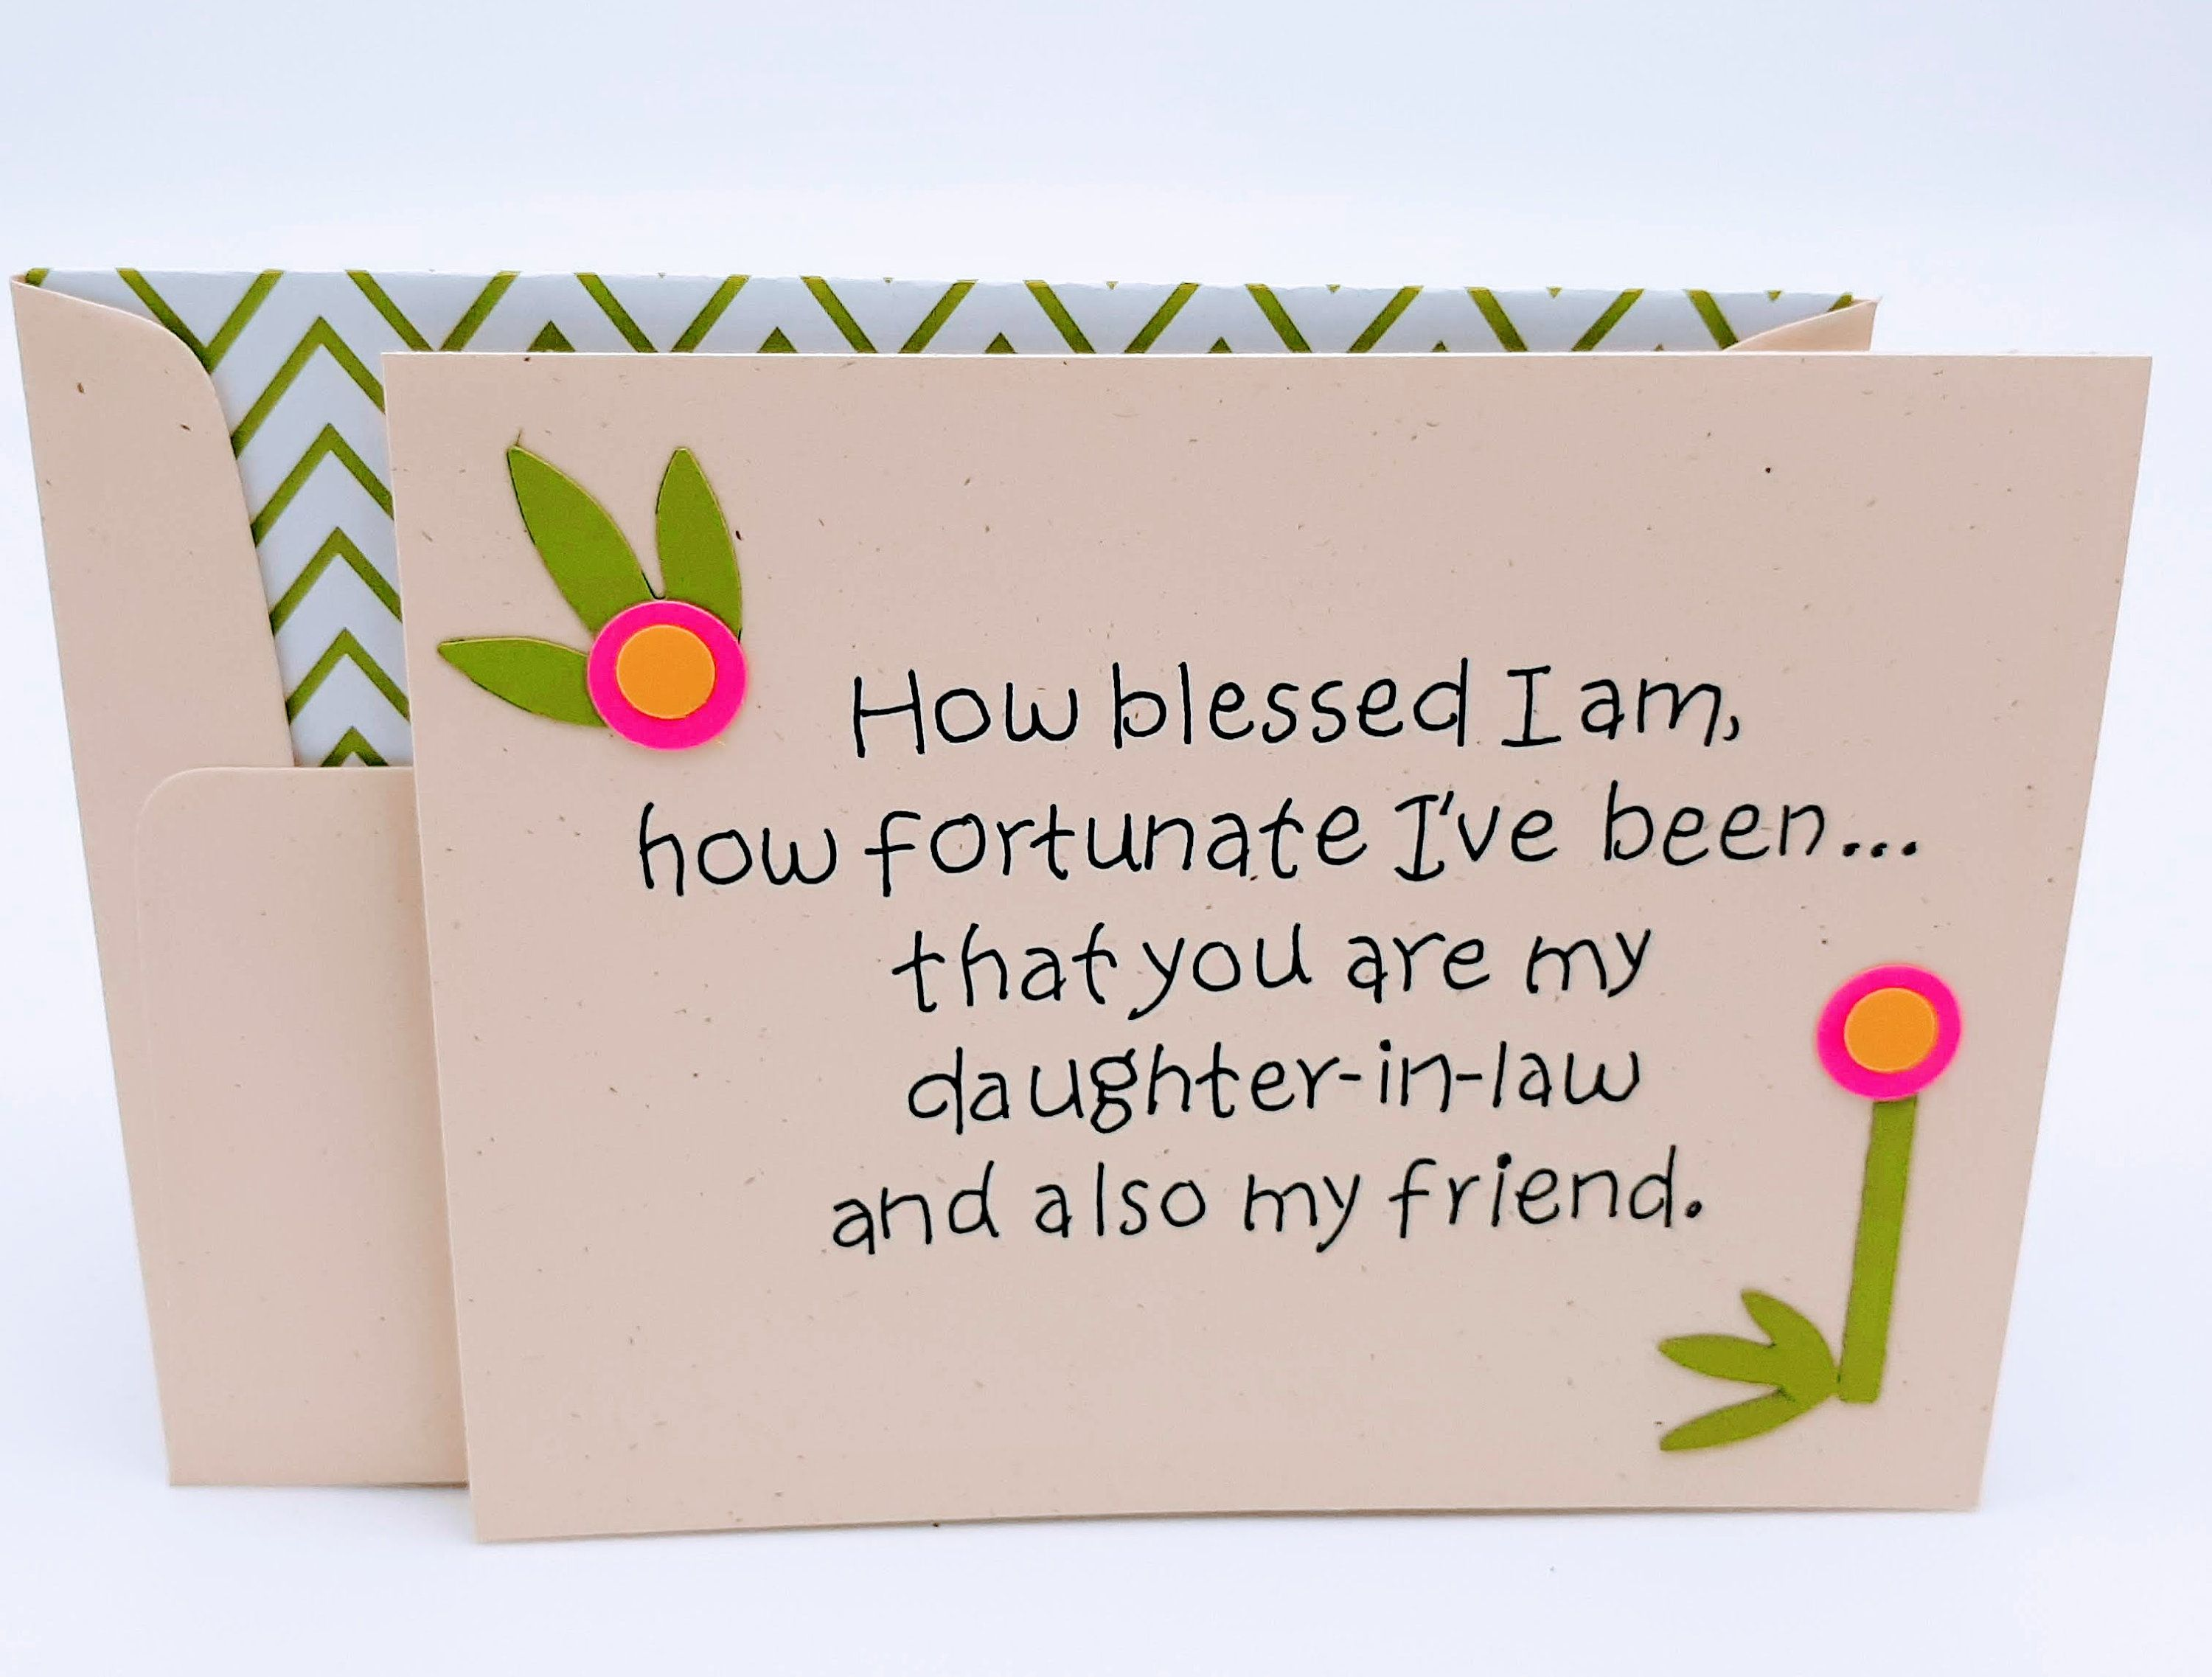 Daughter In Law Birthday Card Love Of Daughter In Law Etsy Birthday Cards Sweet Cards Sister Birthday Card